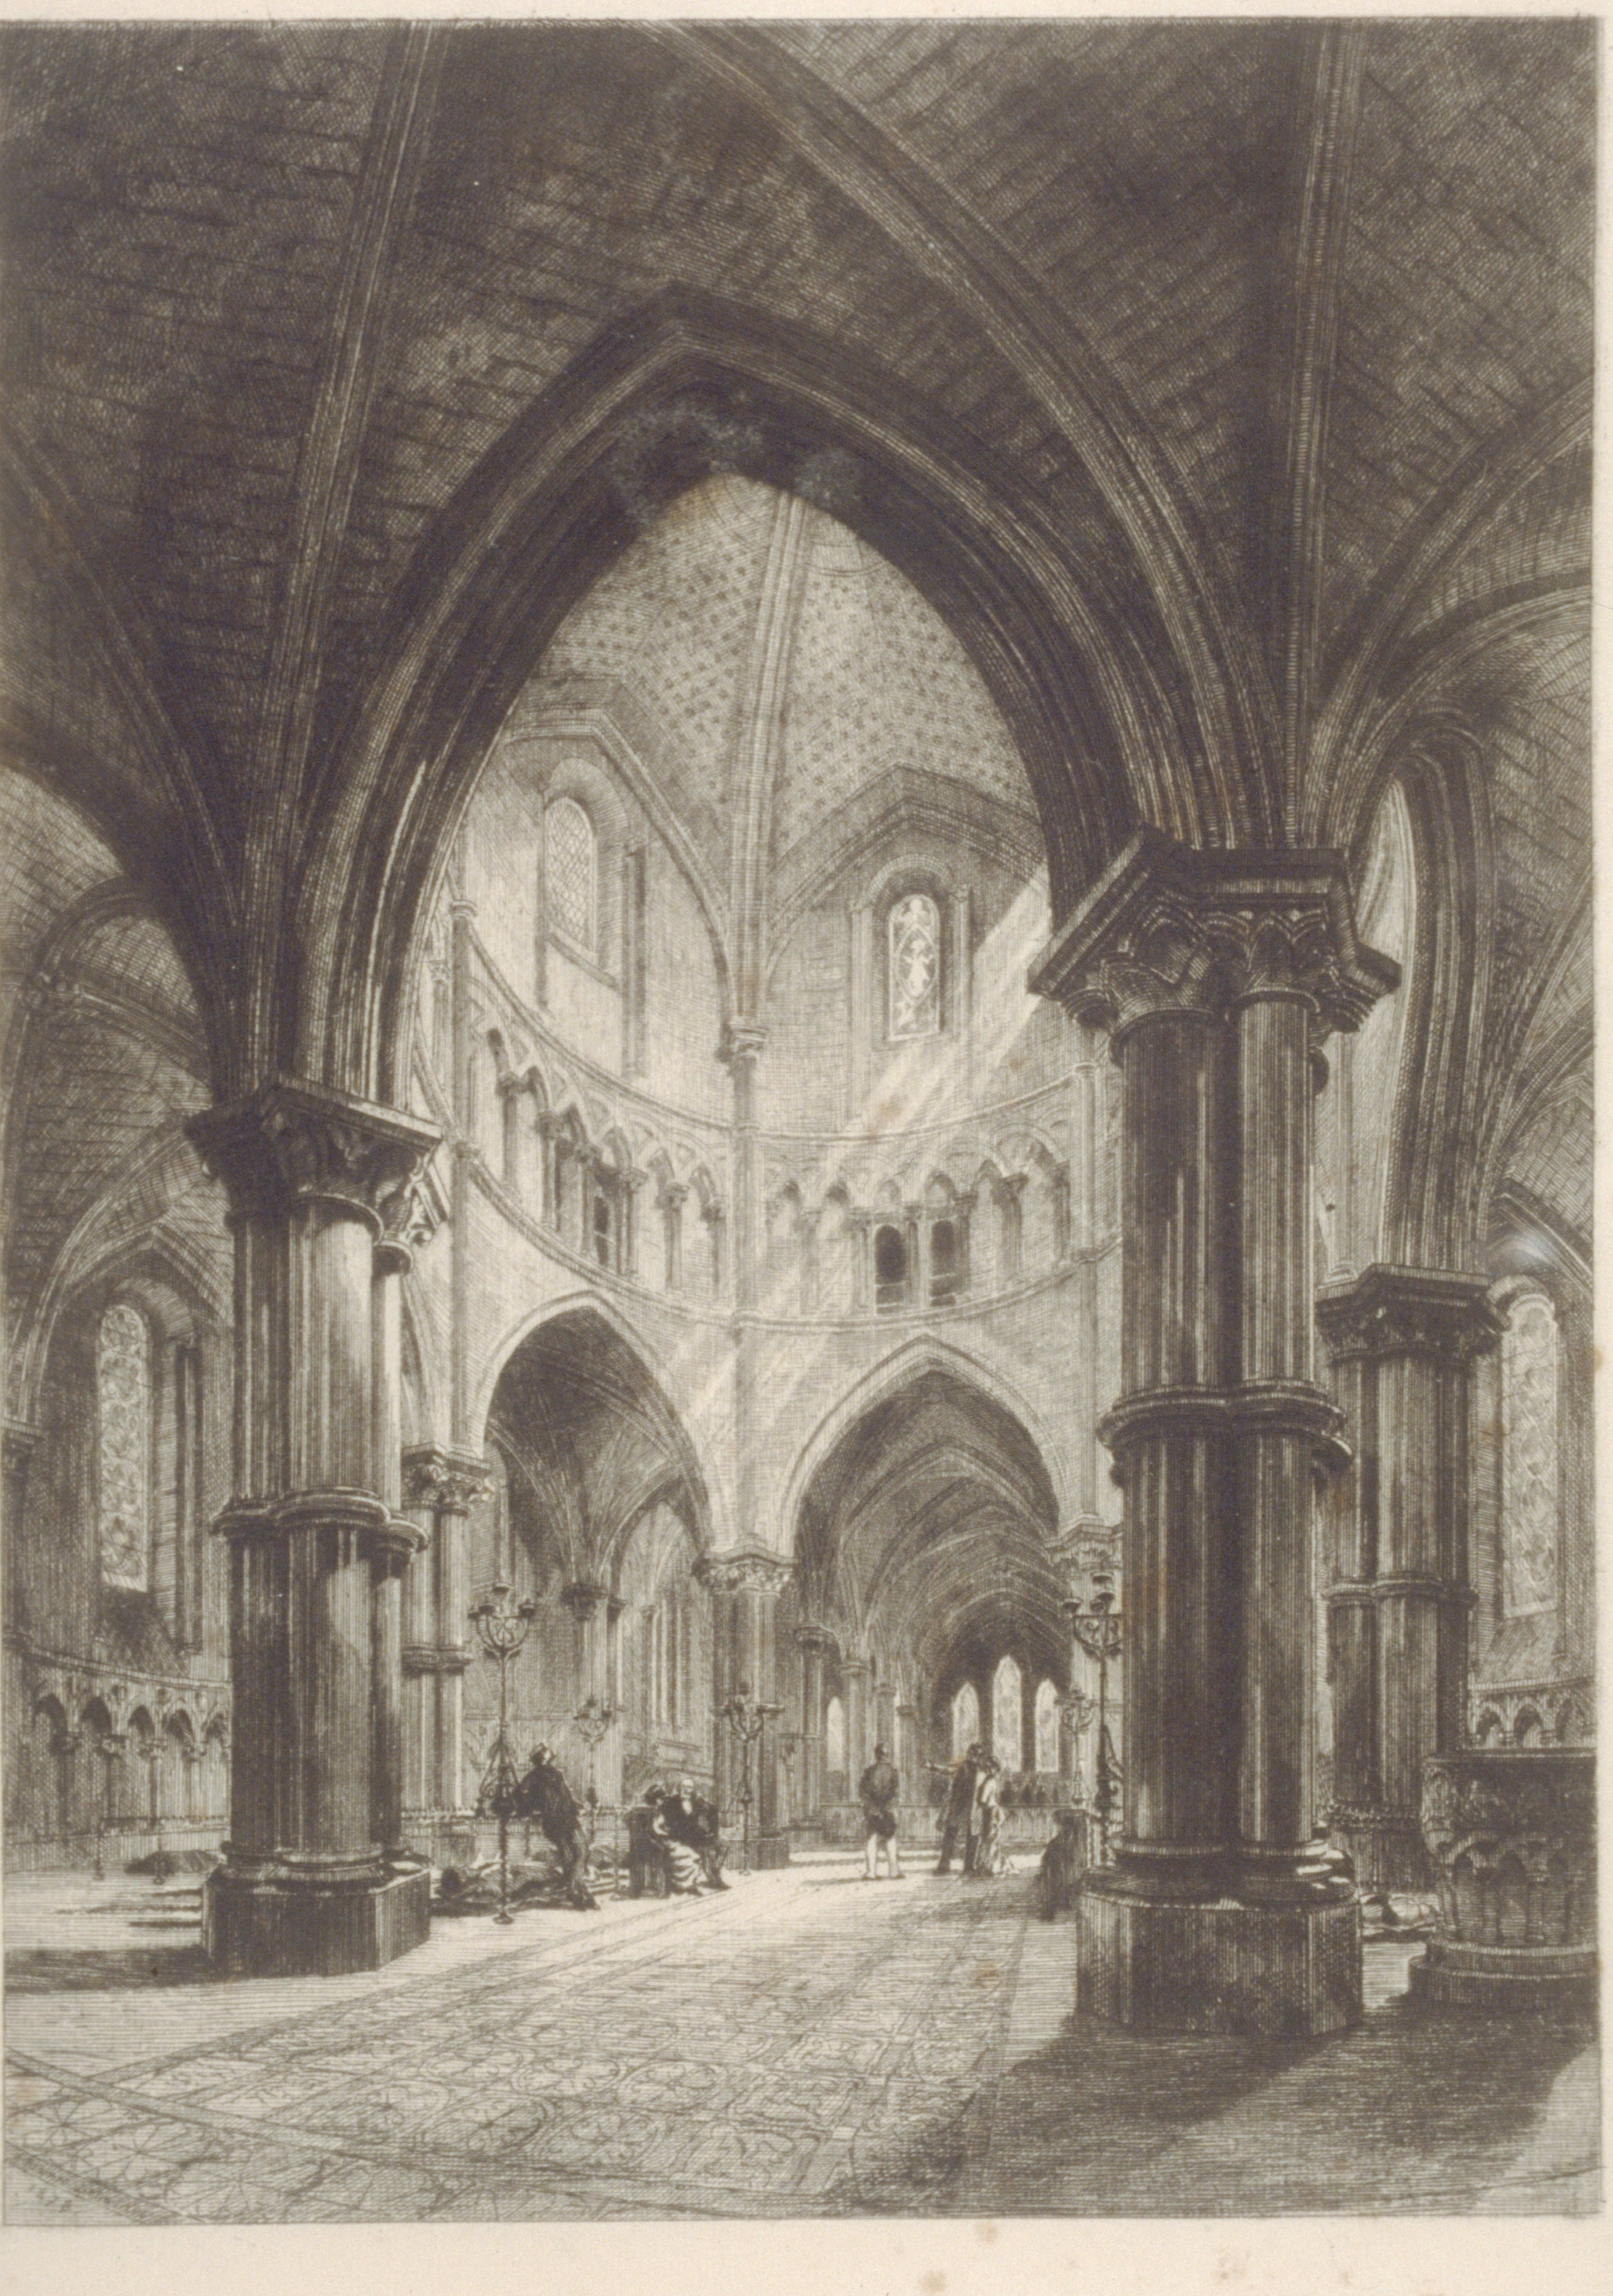 brunet-debaines-interior-of-the-temple-church